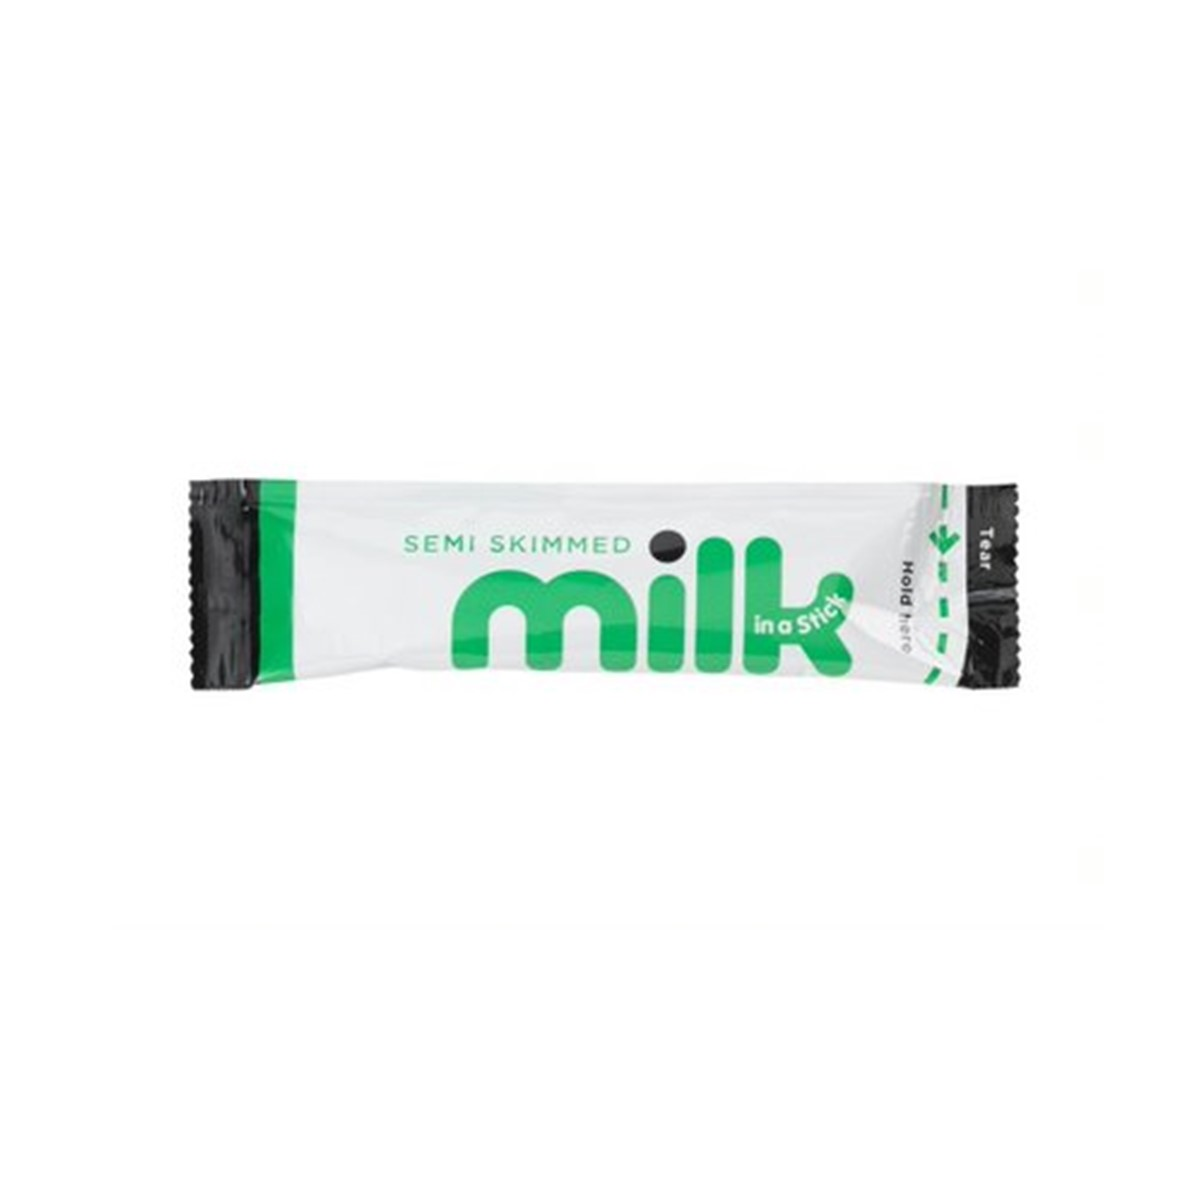 Lakeland Dairies Semi Skimmed Milk [UHT Long Life] - 240x10ml sticks